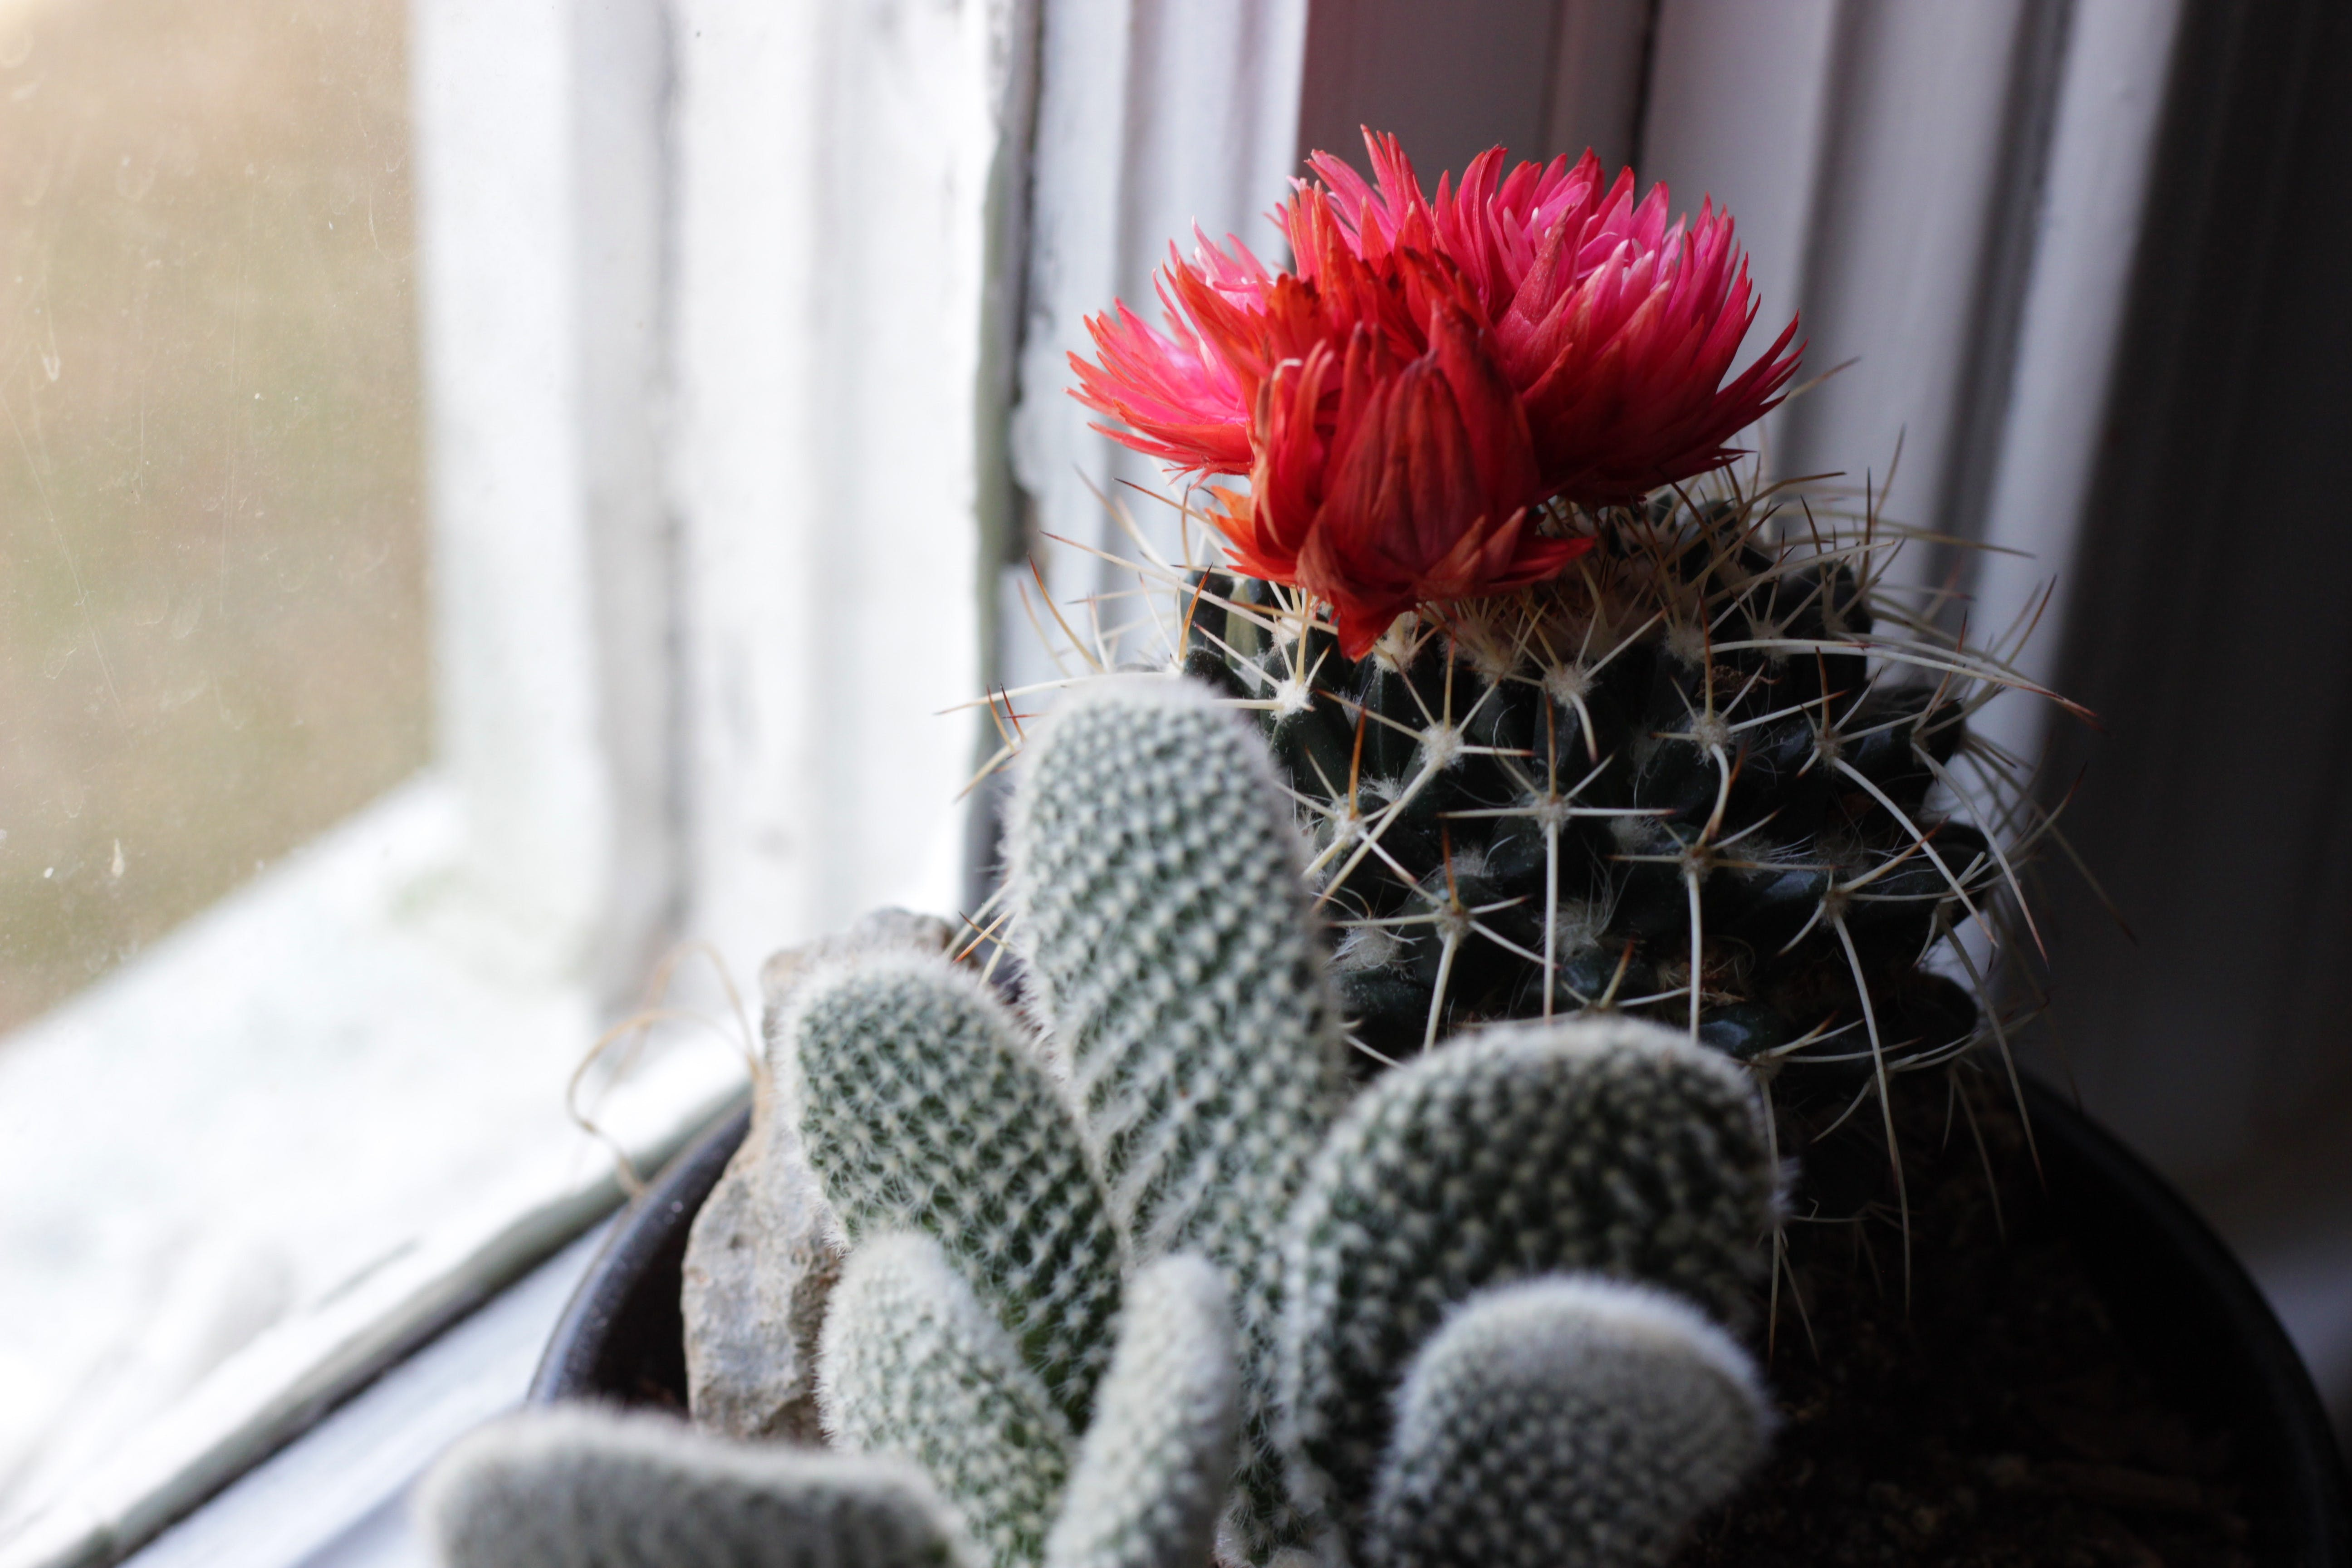 Selective Color Photography of Red Cactus Flower